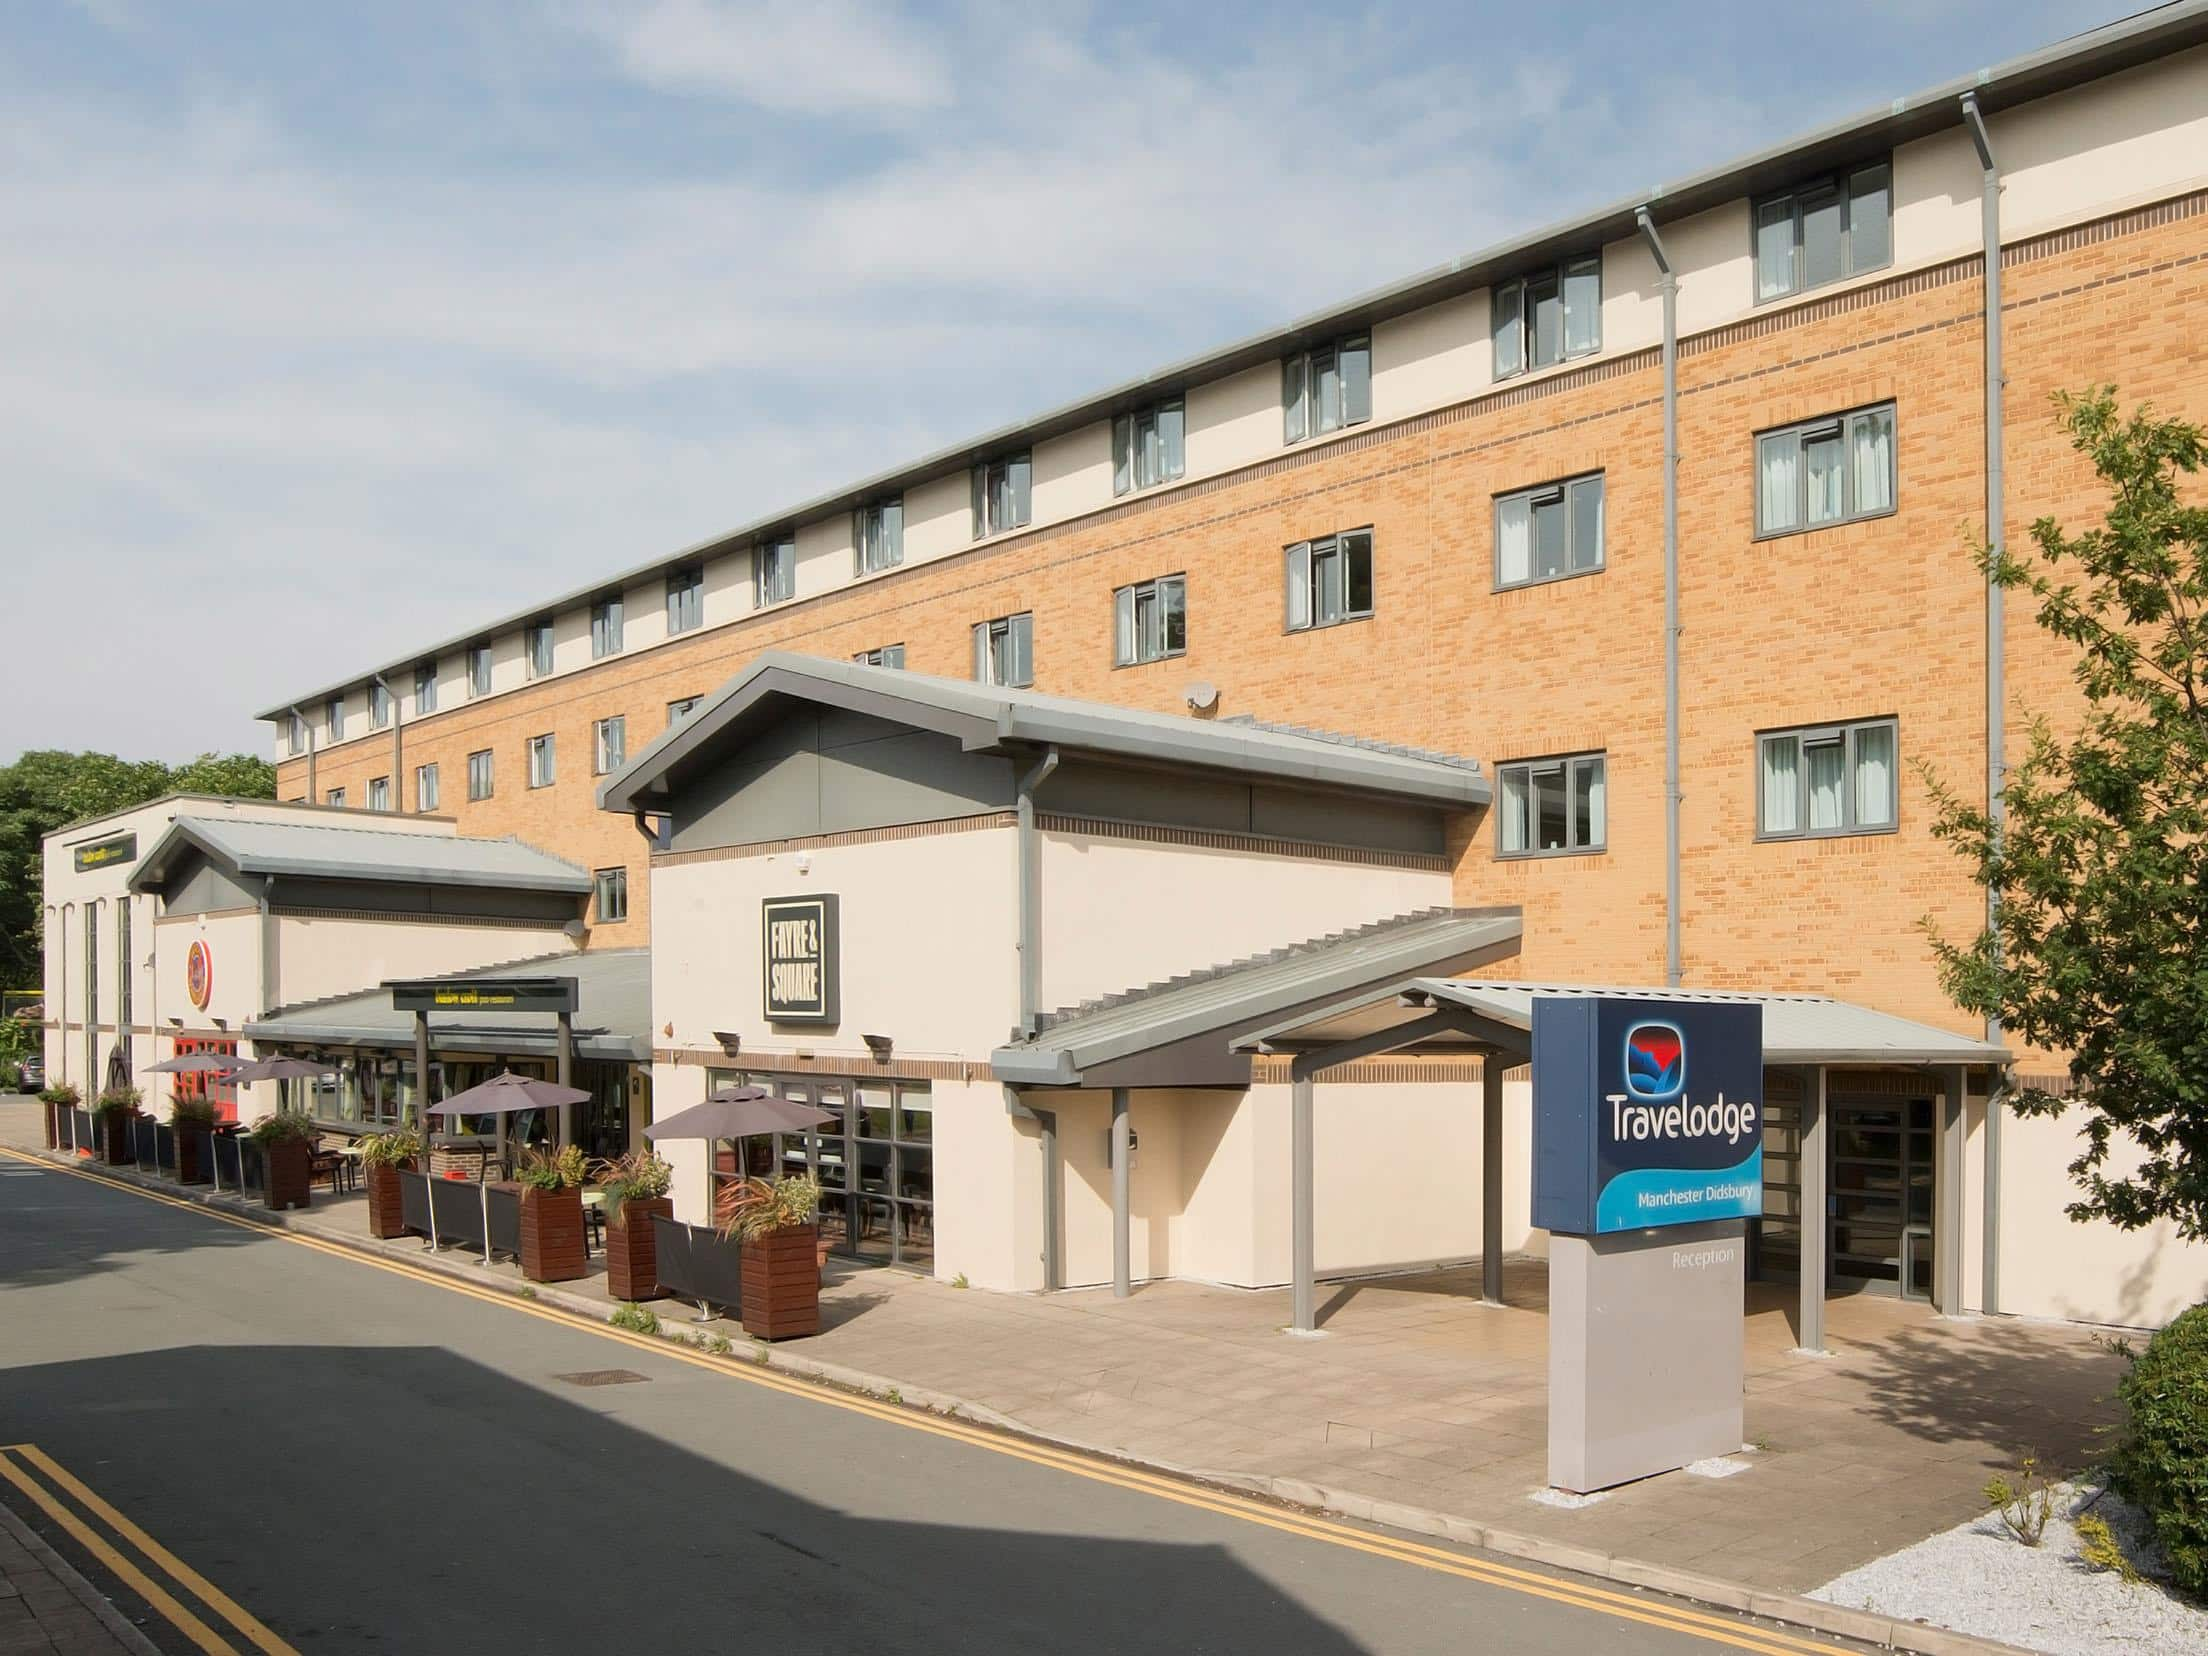 Travelodge Manchester Didsbury Hotel Manchester Didsbury Hotels